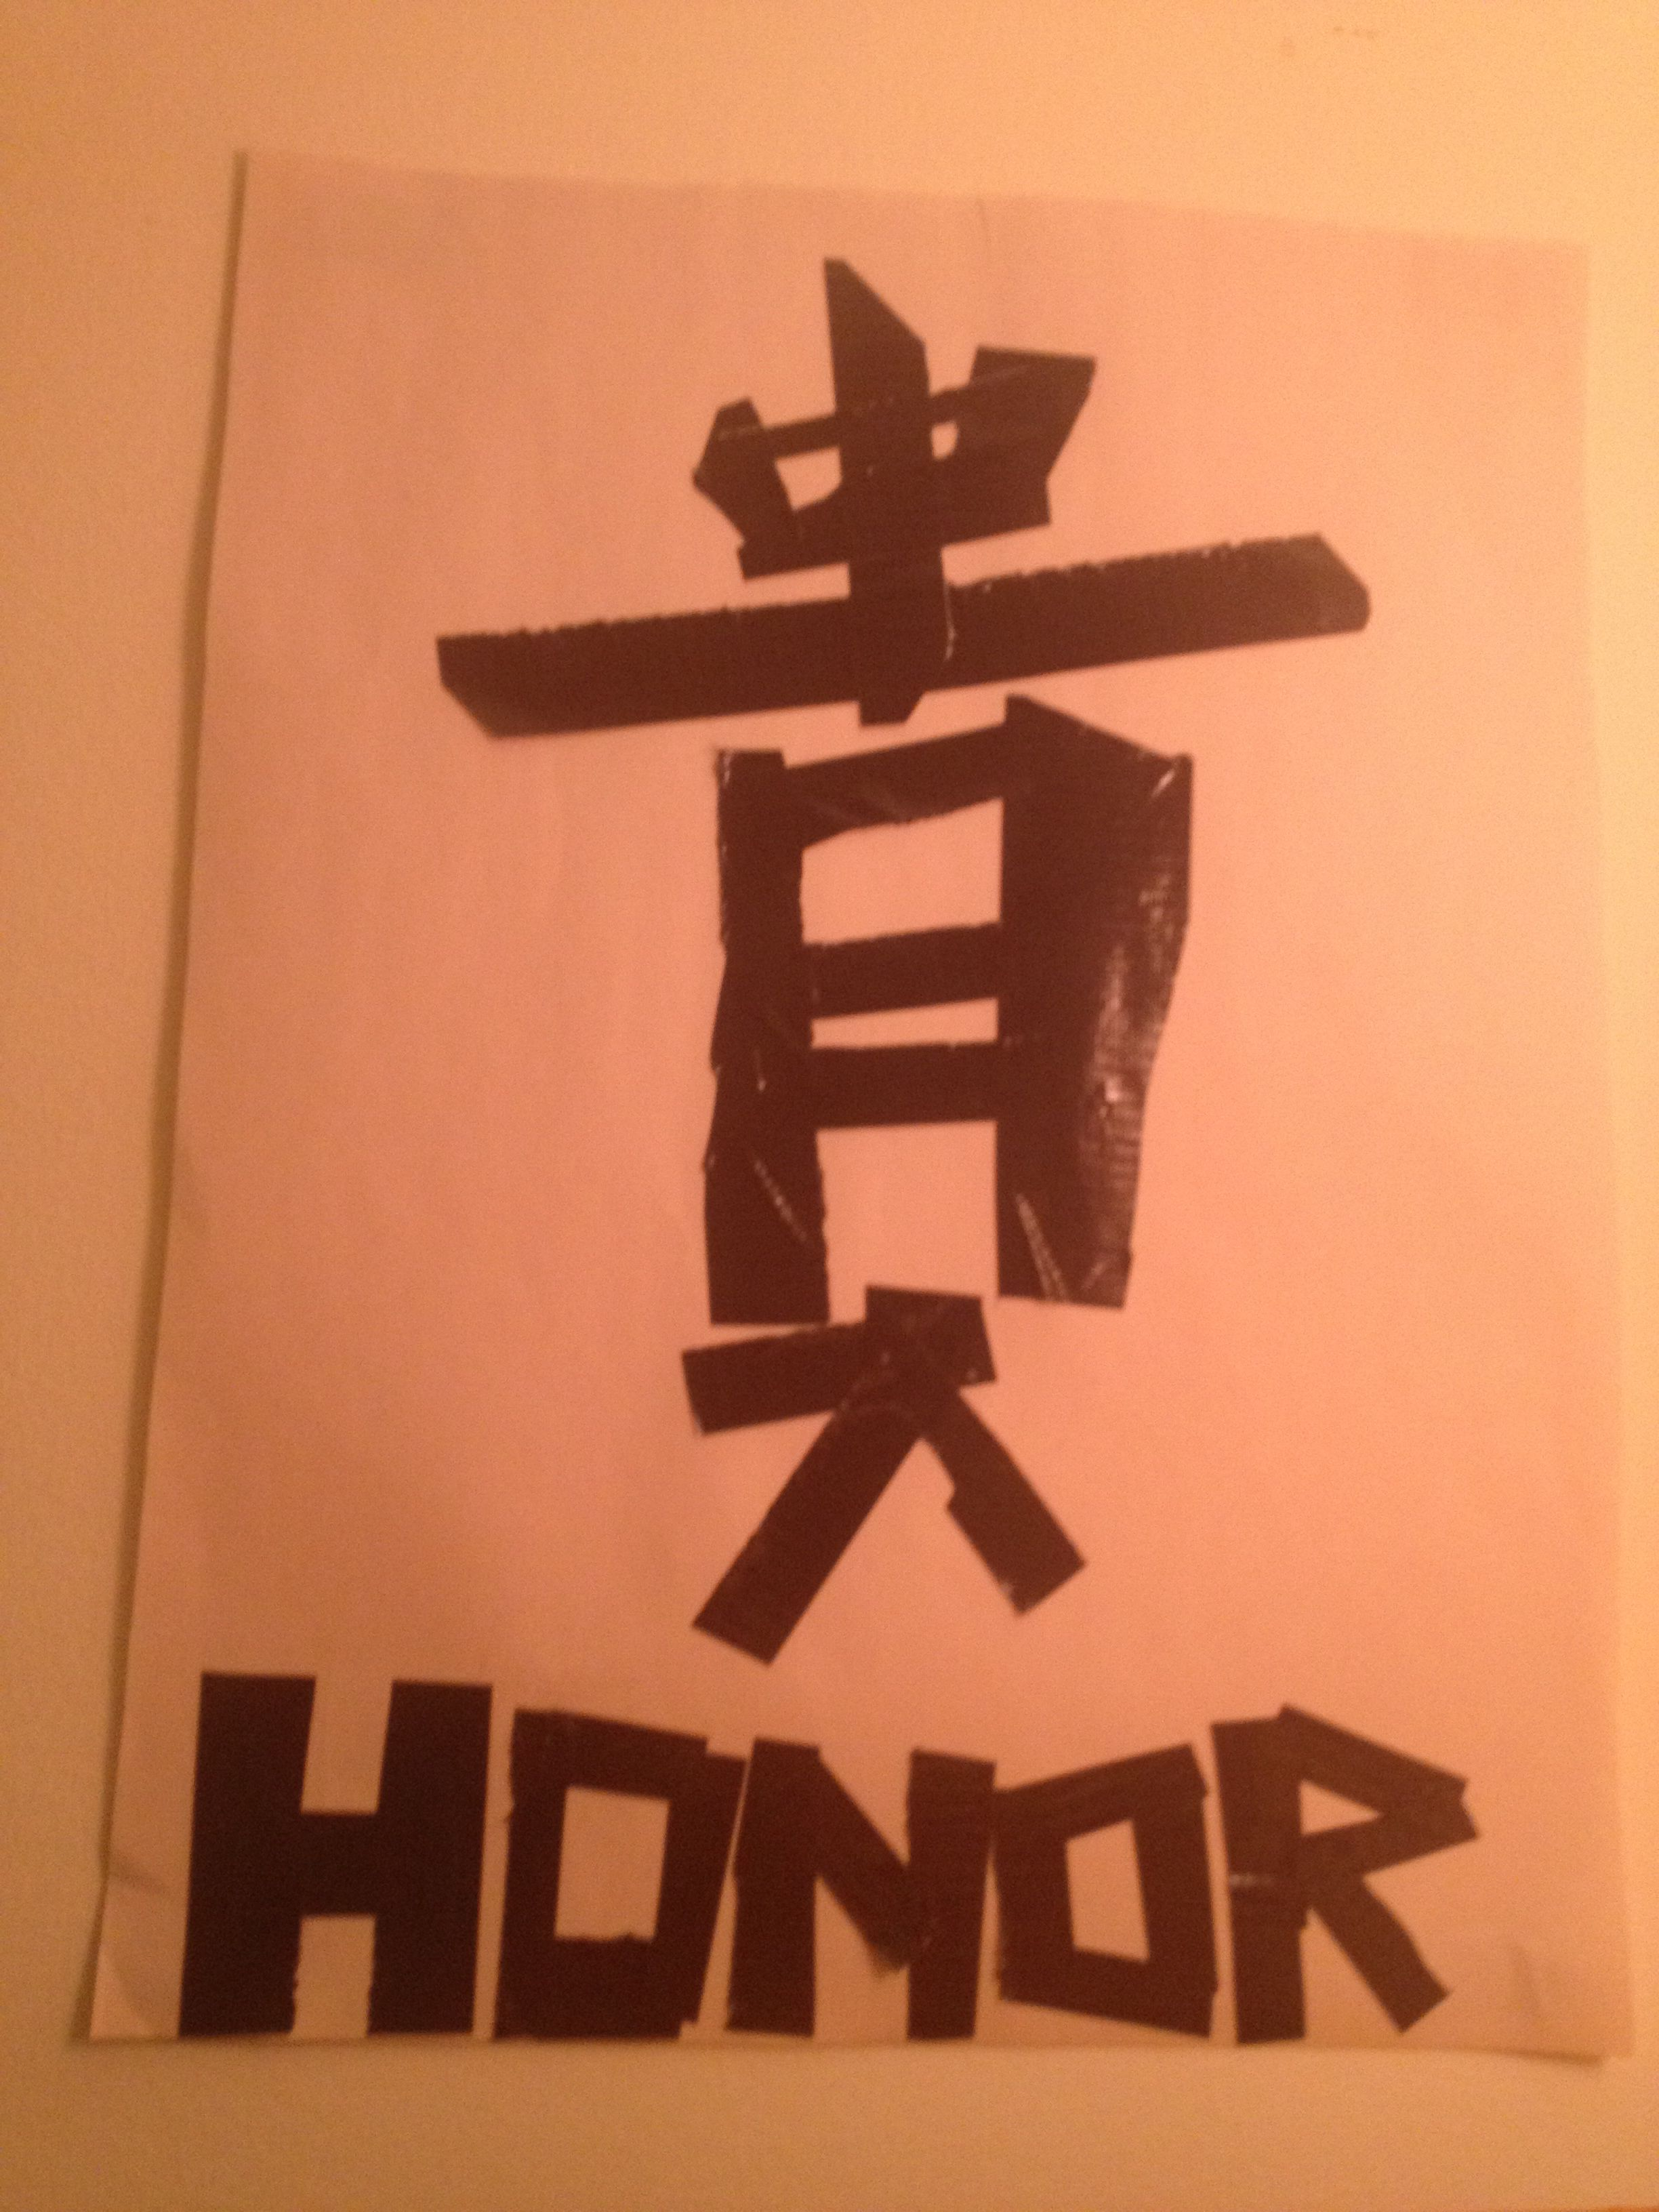 Chinese symbol for honor d made out of duck tape tattoos chinese symbol for honor d made out of duck tape biocorpaavc Gallery